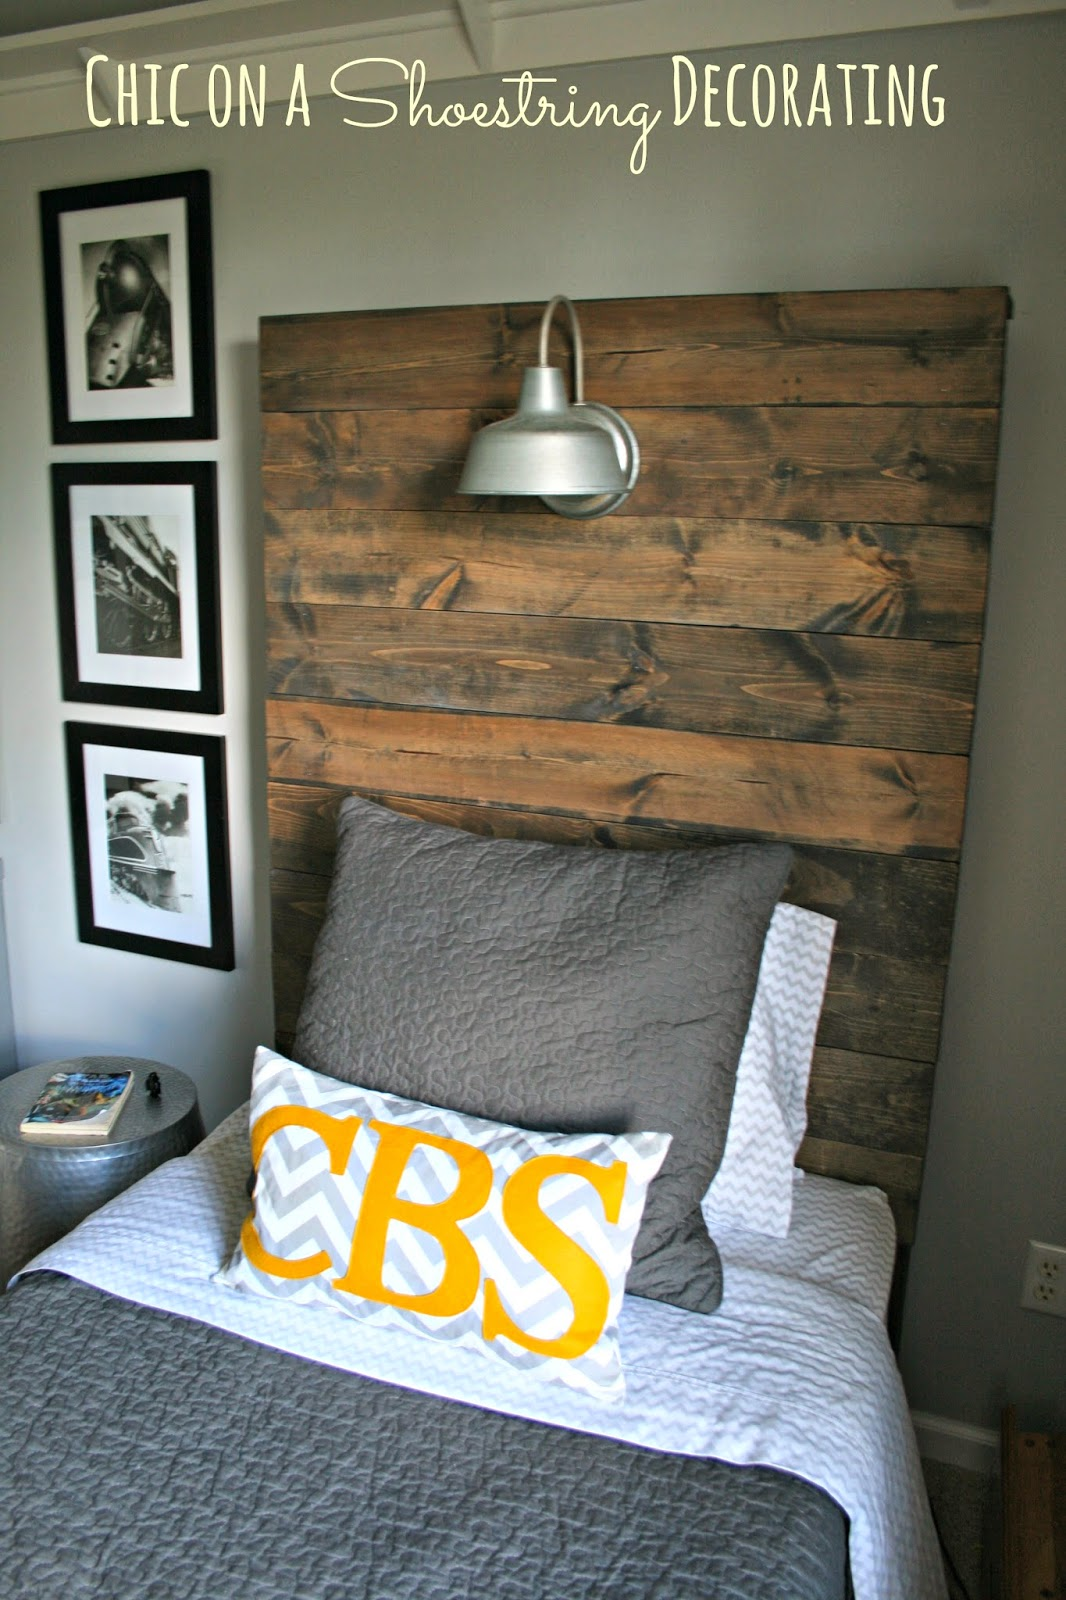 Chic On A Shoestring Decorating How To Build A Rustic